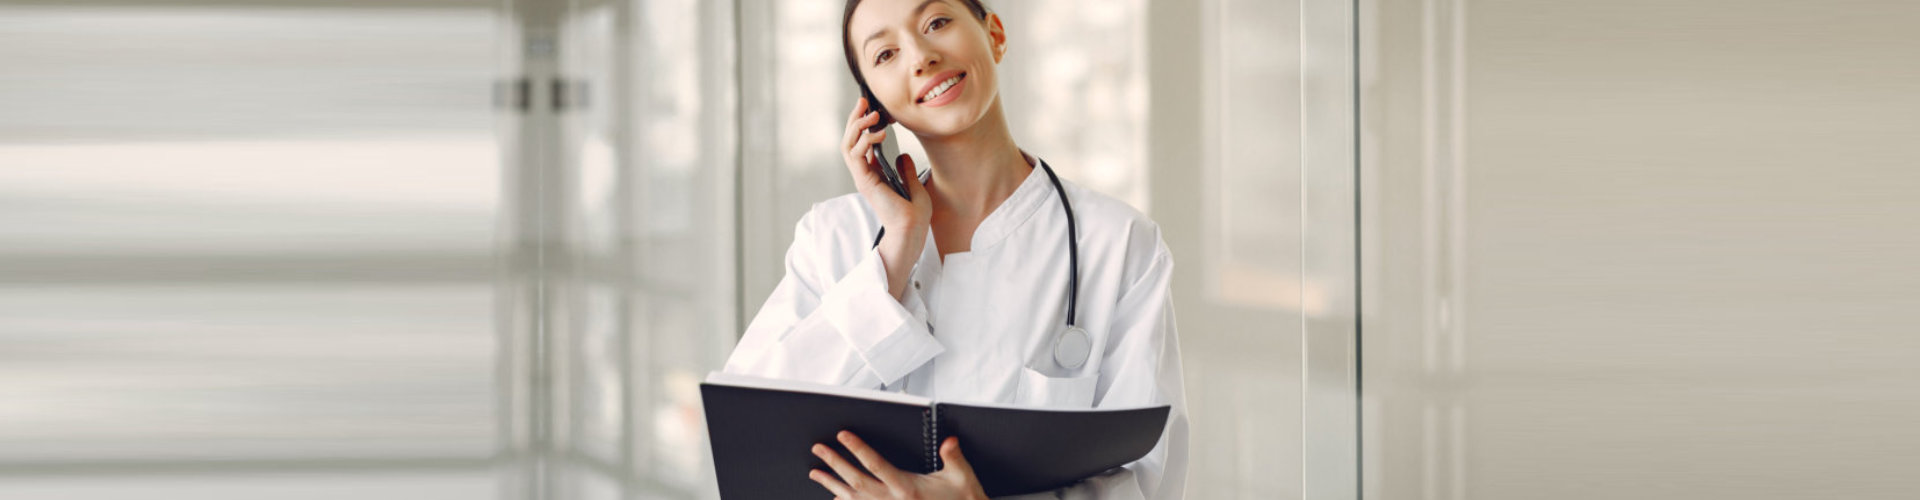 female pharmacist taking a phone call